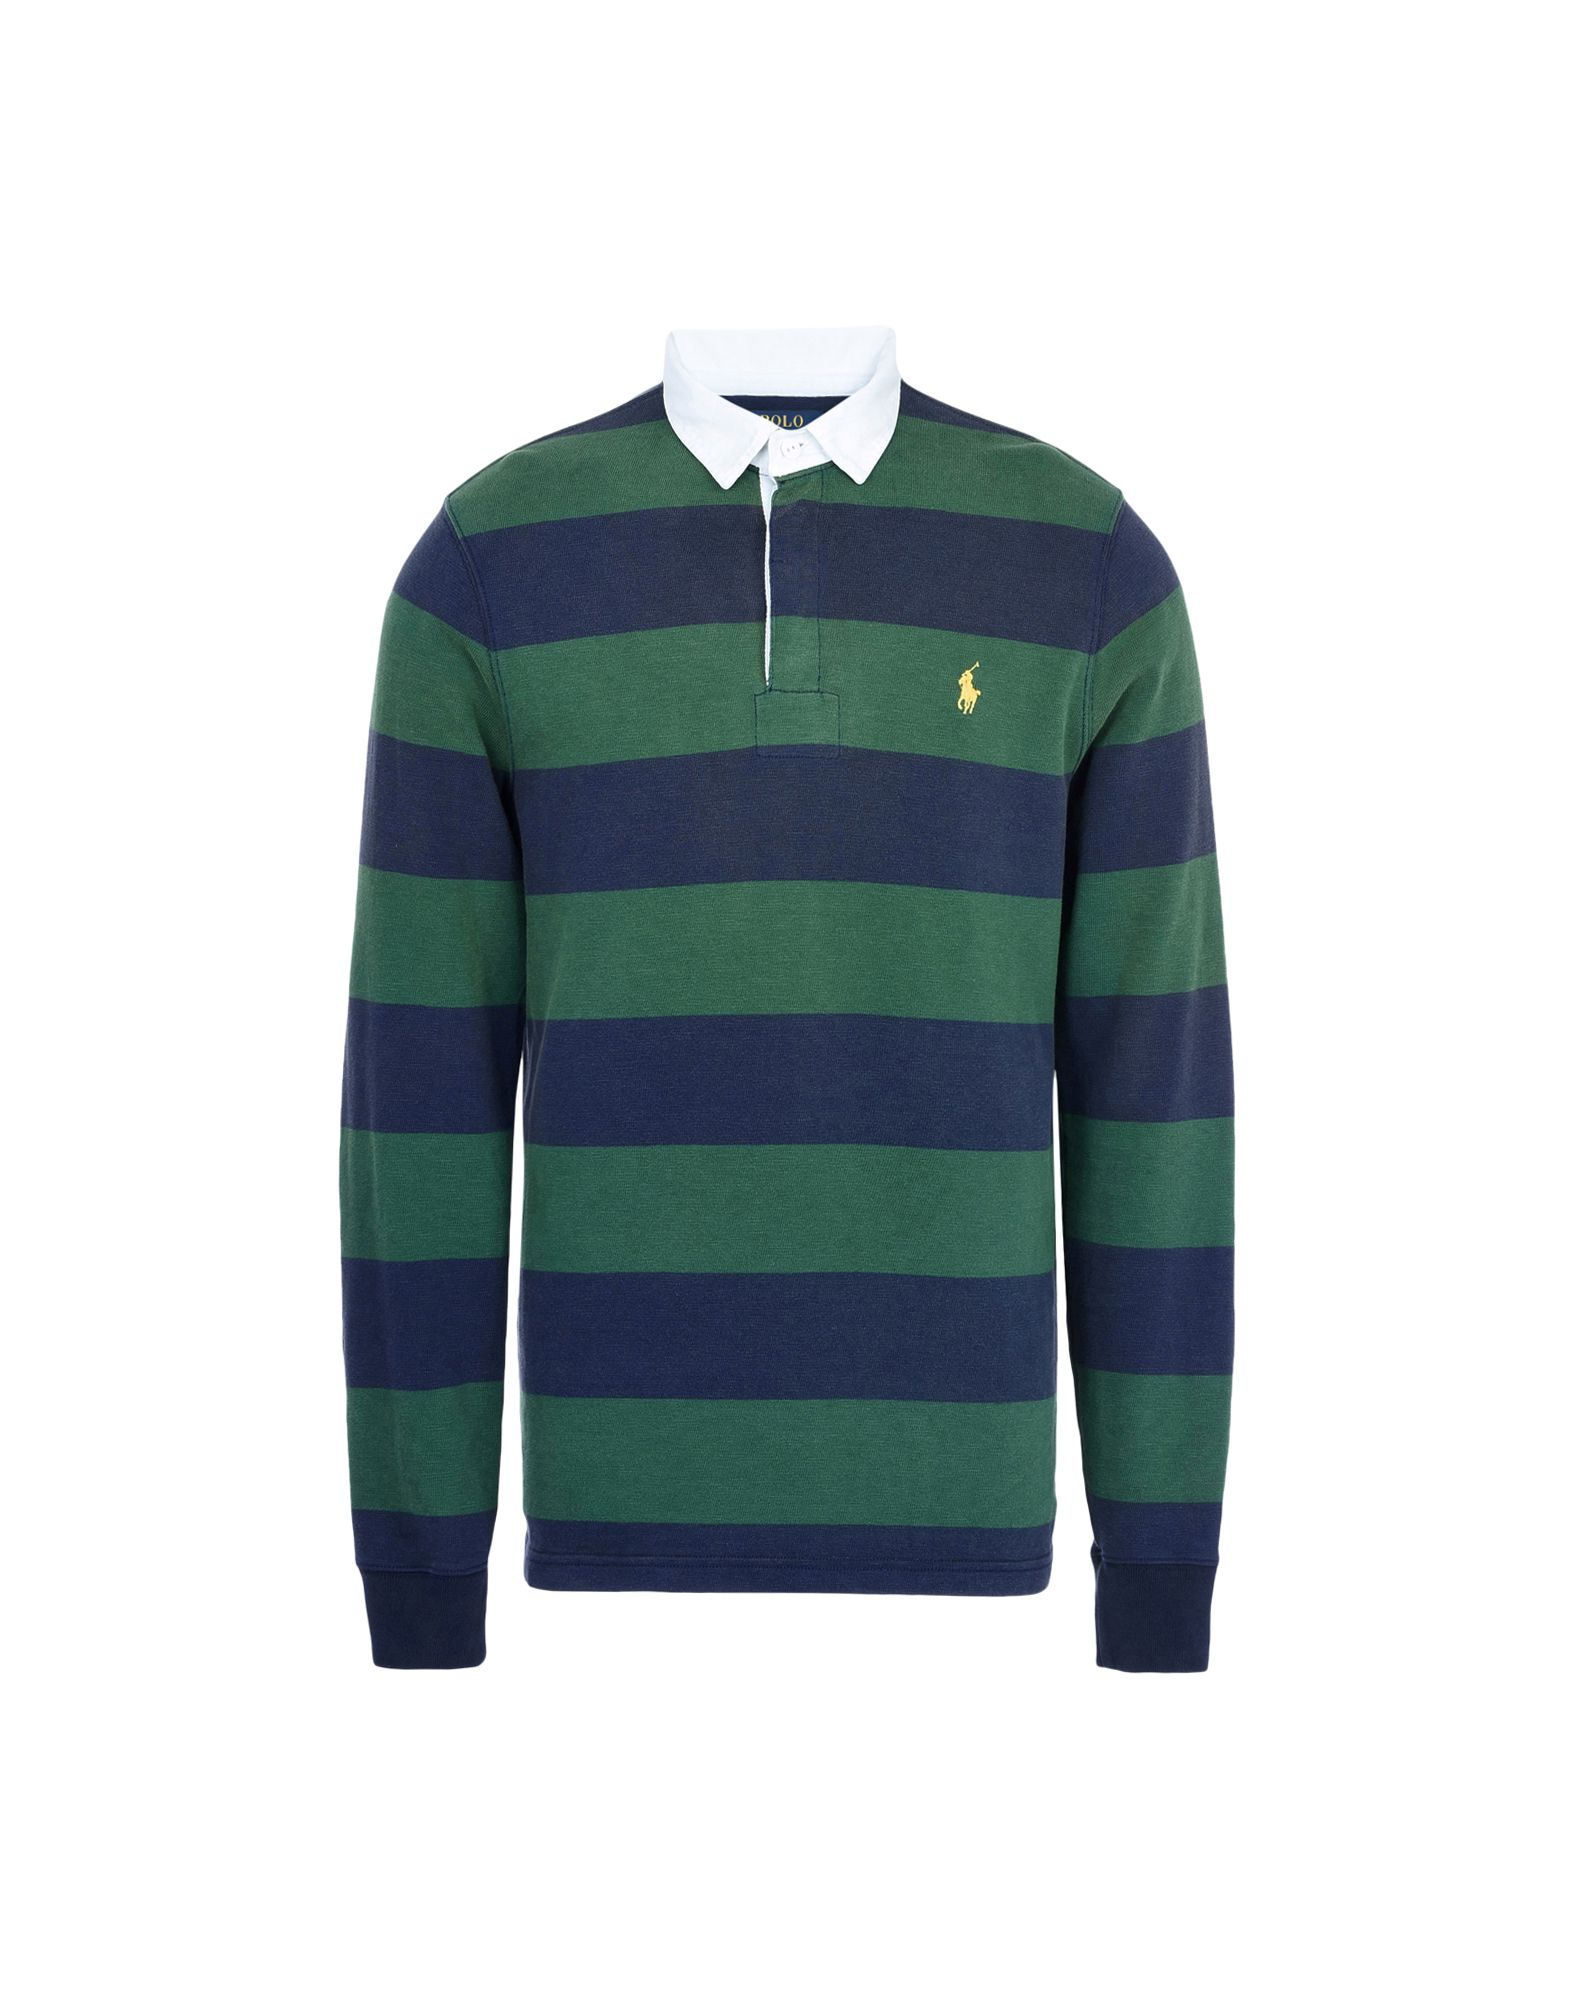 6fa8ee7f3420 Polo Ralph Lauren The Iconic Rugby Shirt - Polo Shirt - Men Polo ...